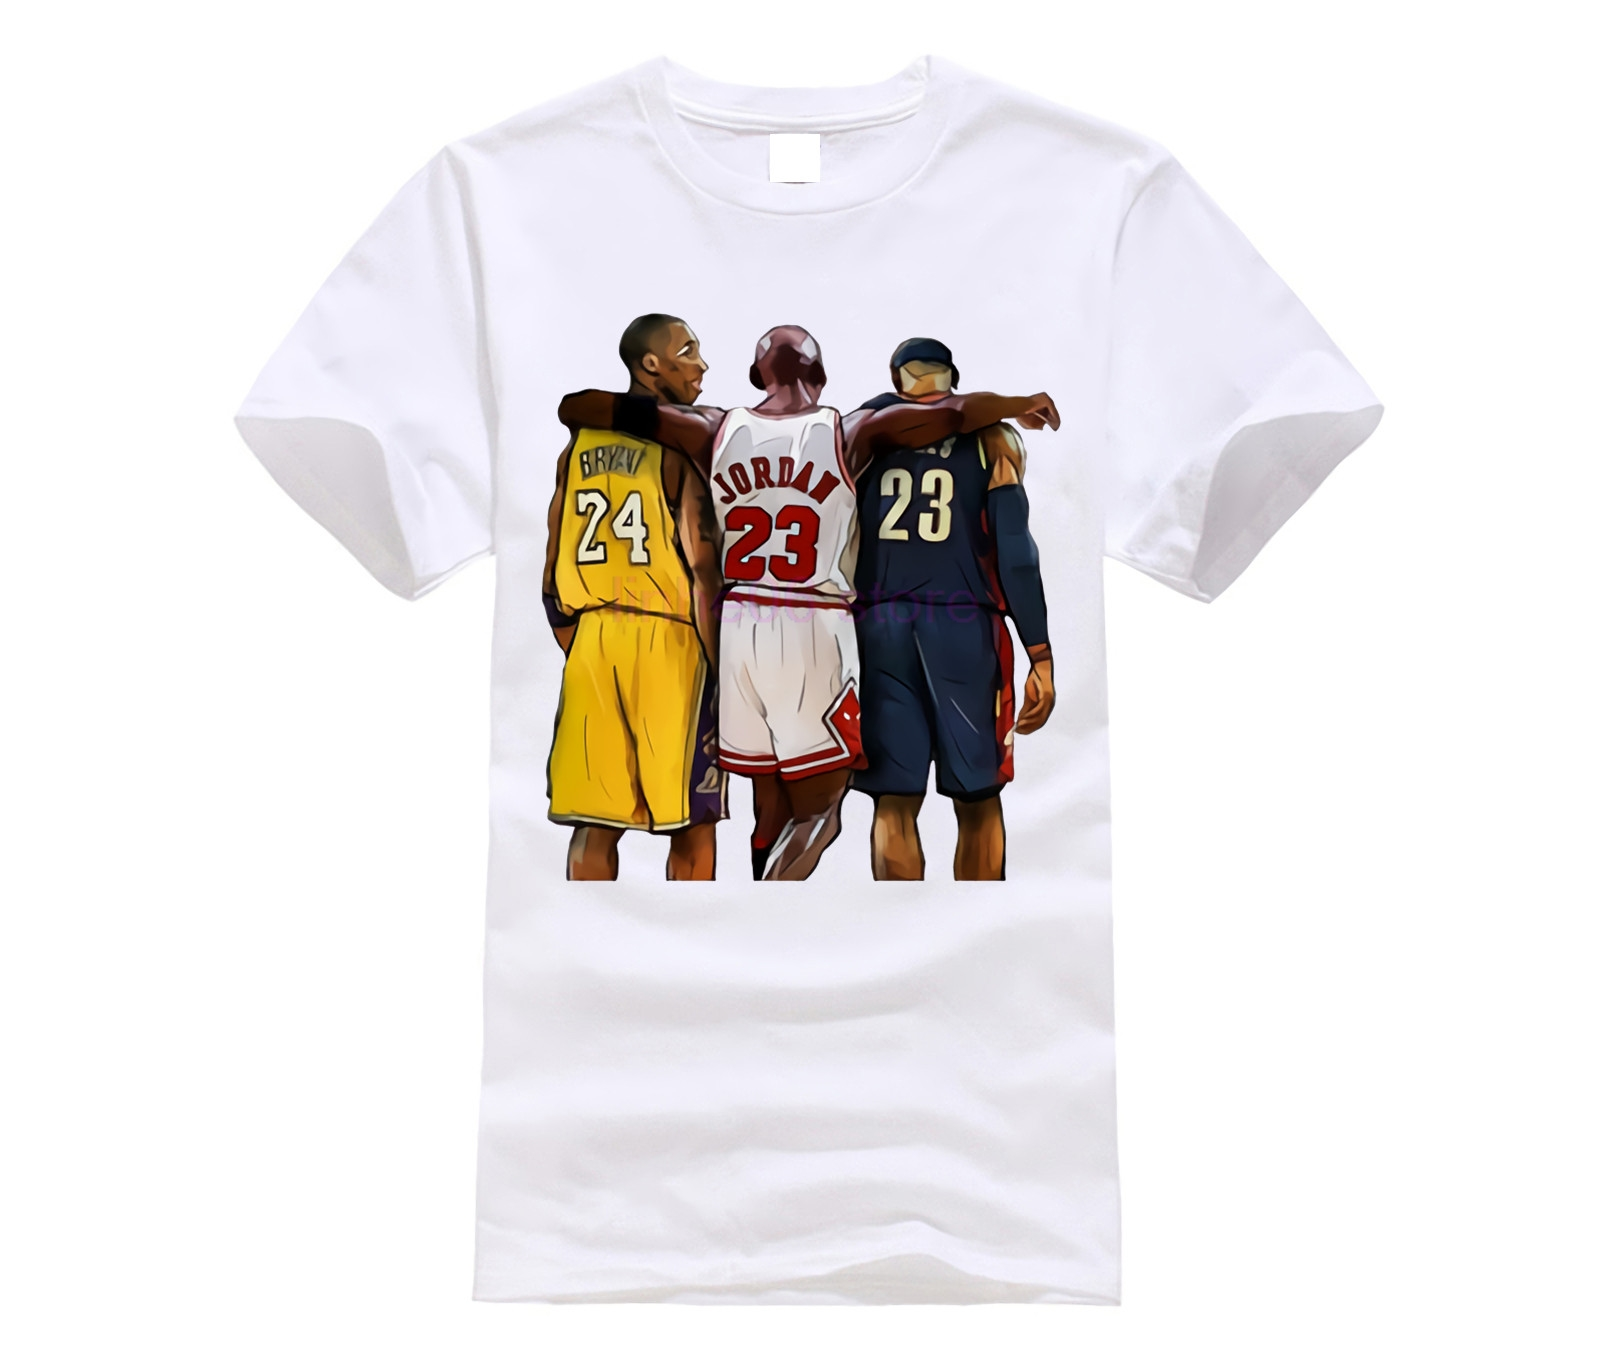 best service ec28f 45979 US $8.46 23% OFF|Lebron sweeps the raptors funny Men Tees T Shirts Novelty  COOL Casual Fashion Goat Basketballs America Cavs Toronto Tops-in T-Shirts  ...